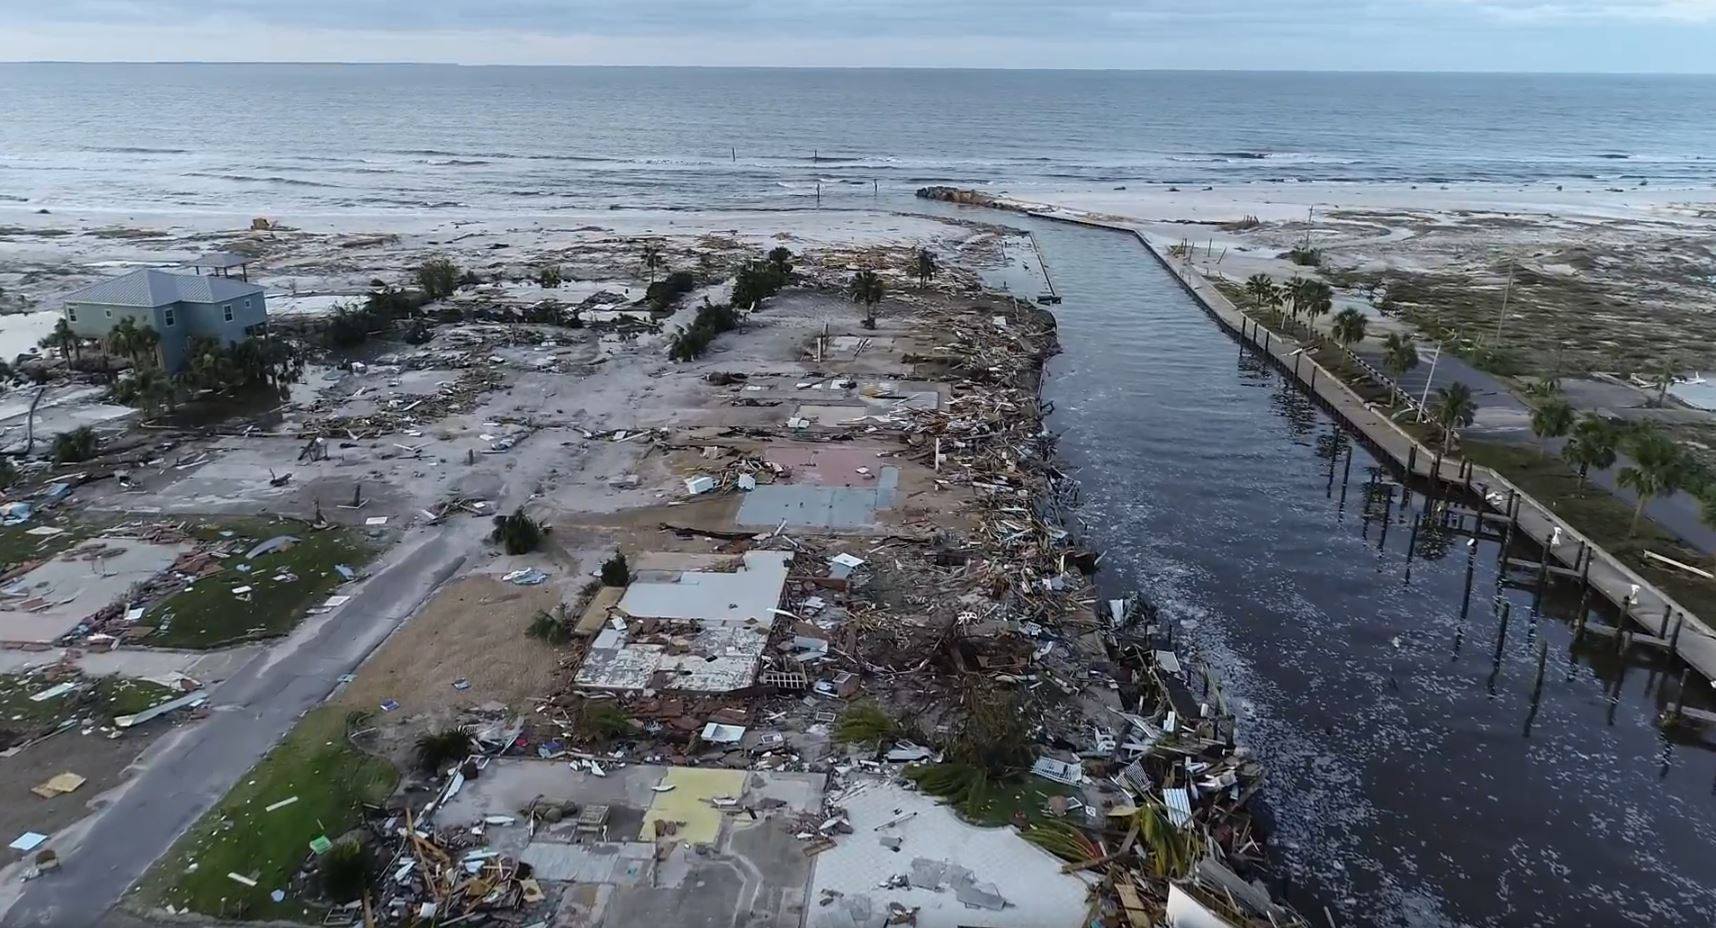 Drone Footage Shows Hurricane Michael Ravaged Florida Town Where It Made Landfall